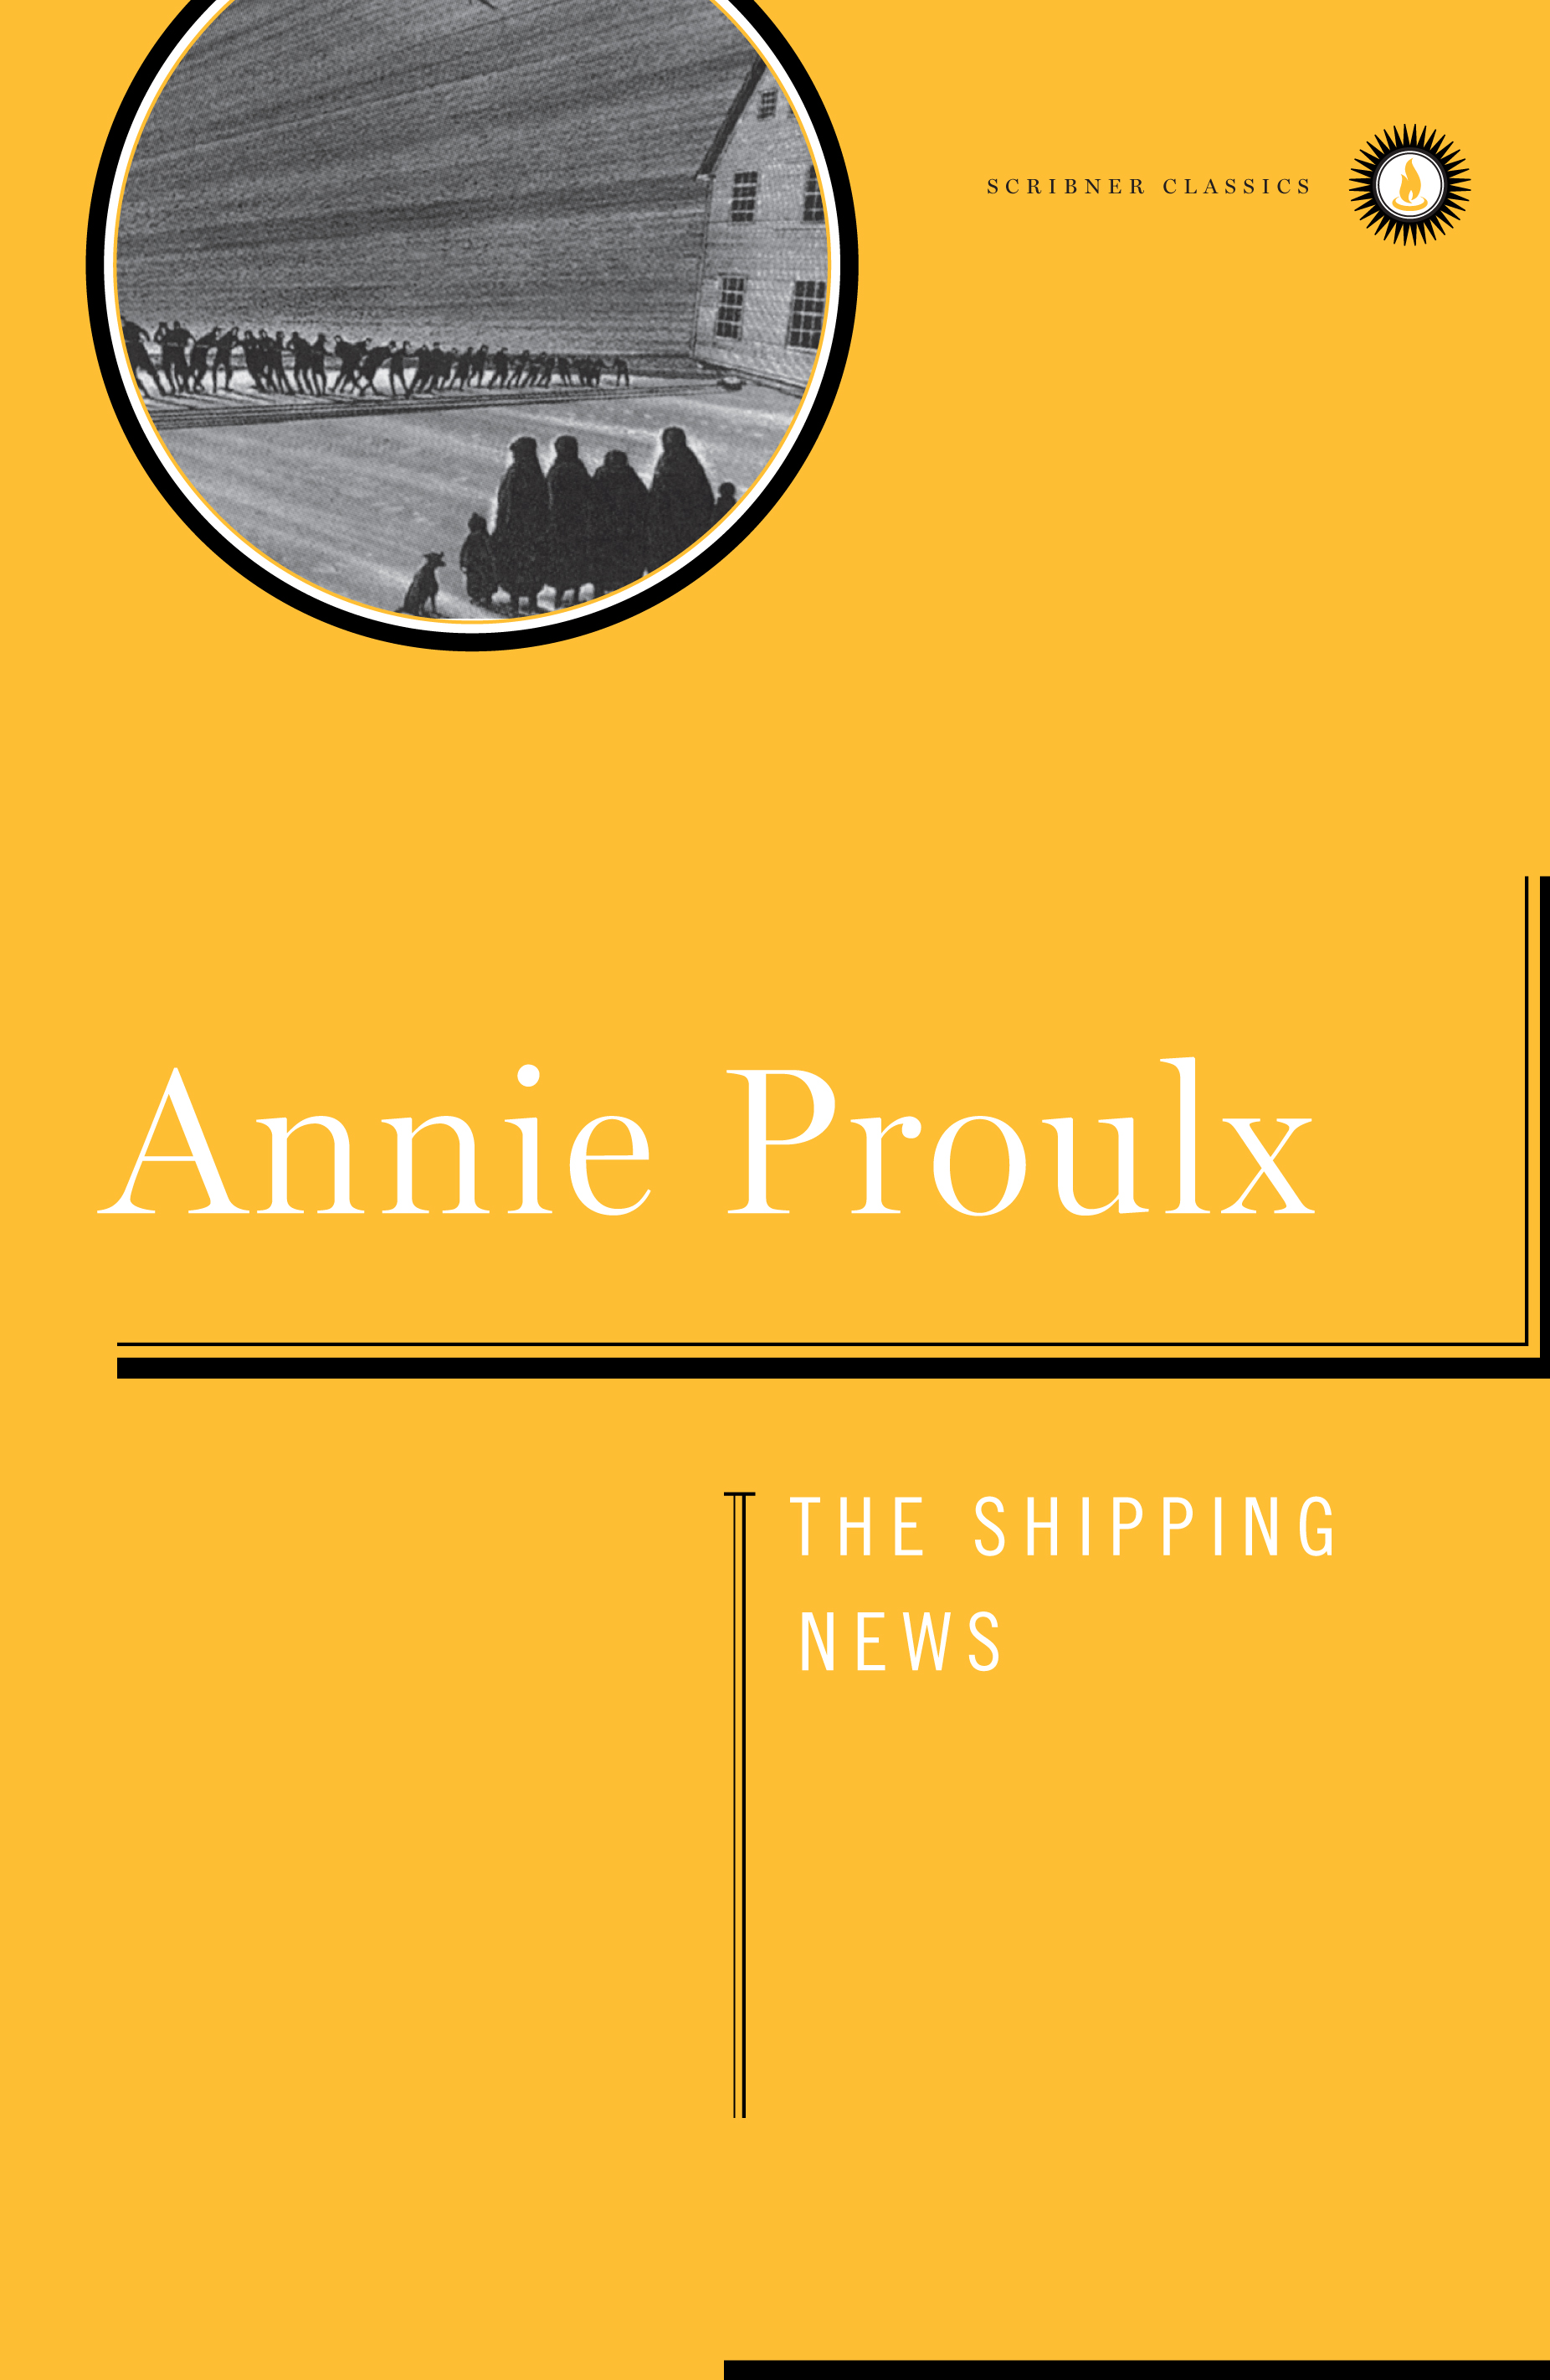 The shipping news cover book